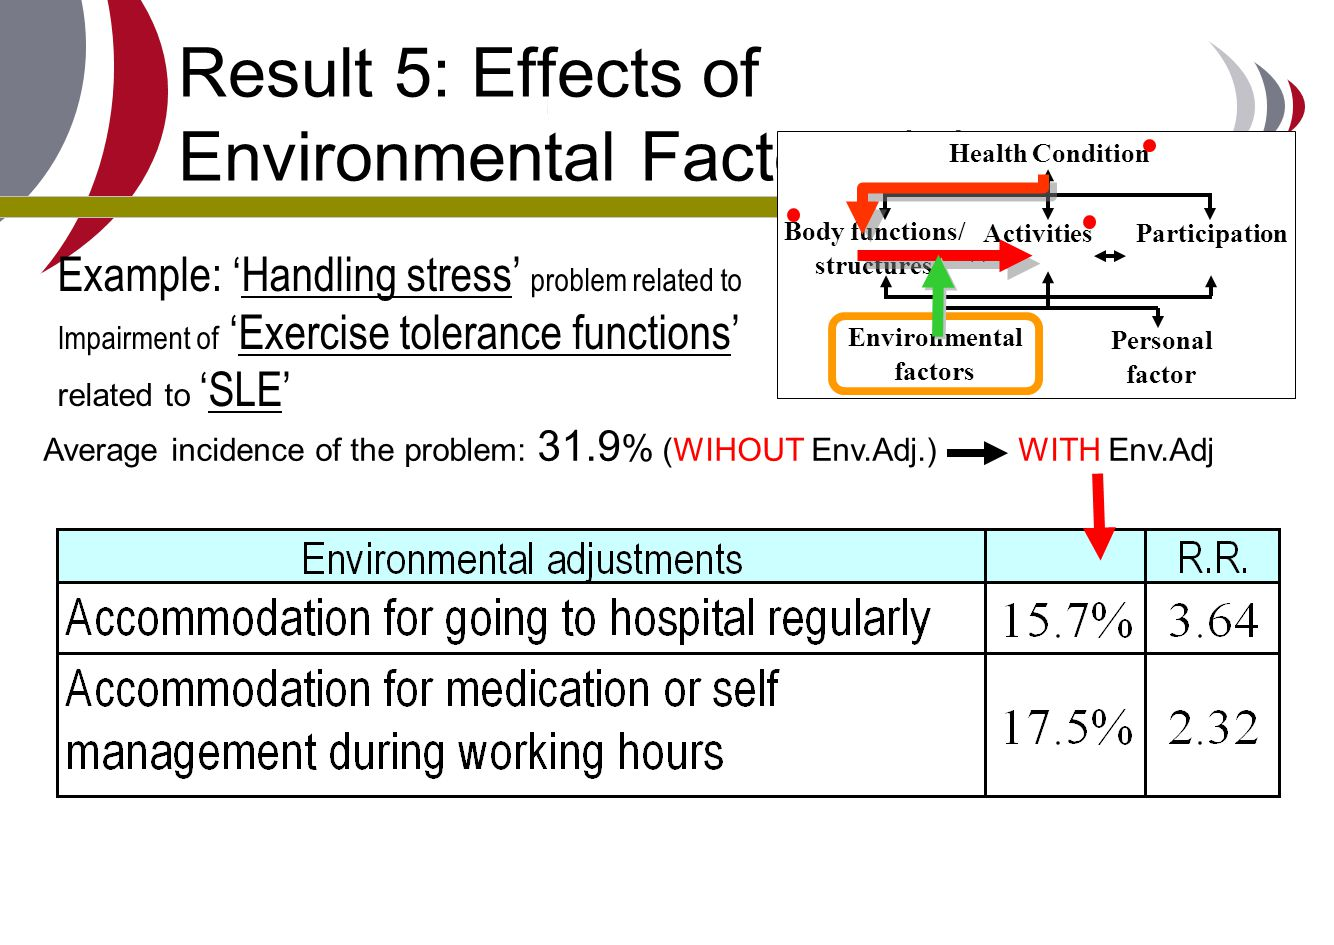 Result 5: Effects of Environmental Factors (3) Average incidence of the problem: 31.9 % (WIHOUT Env.Adj.) WITH Env.Adj Example: 'Handling stress' prob